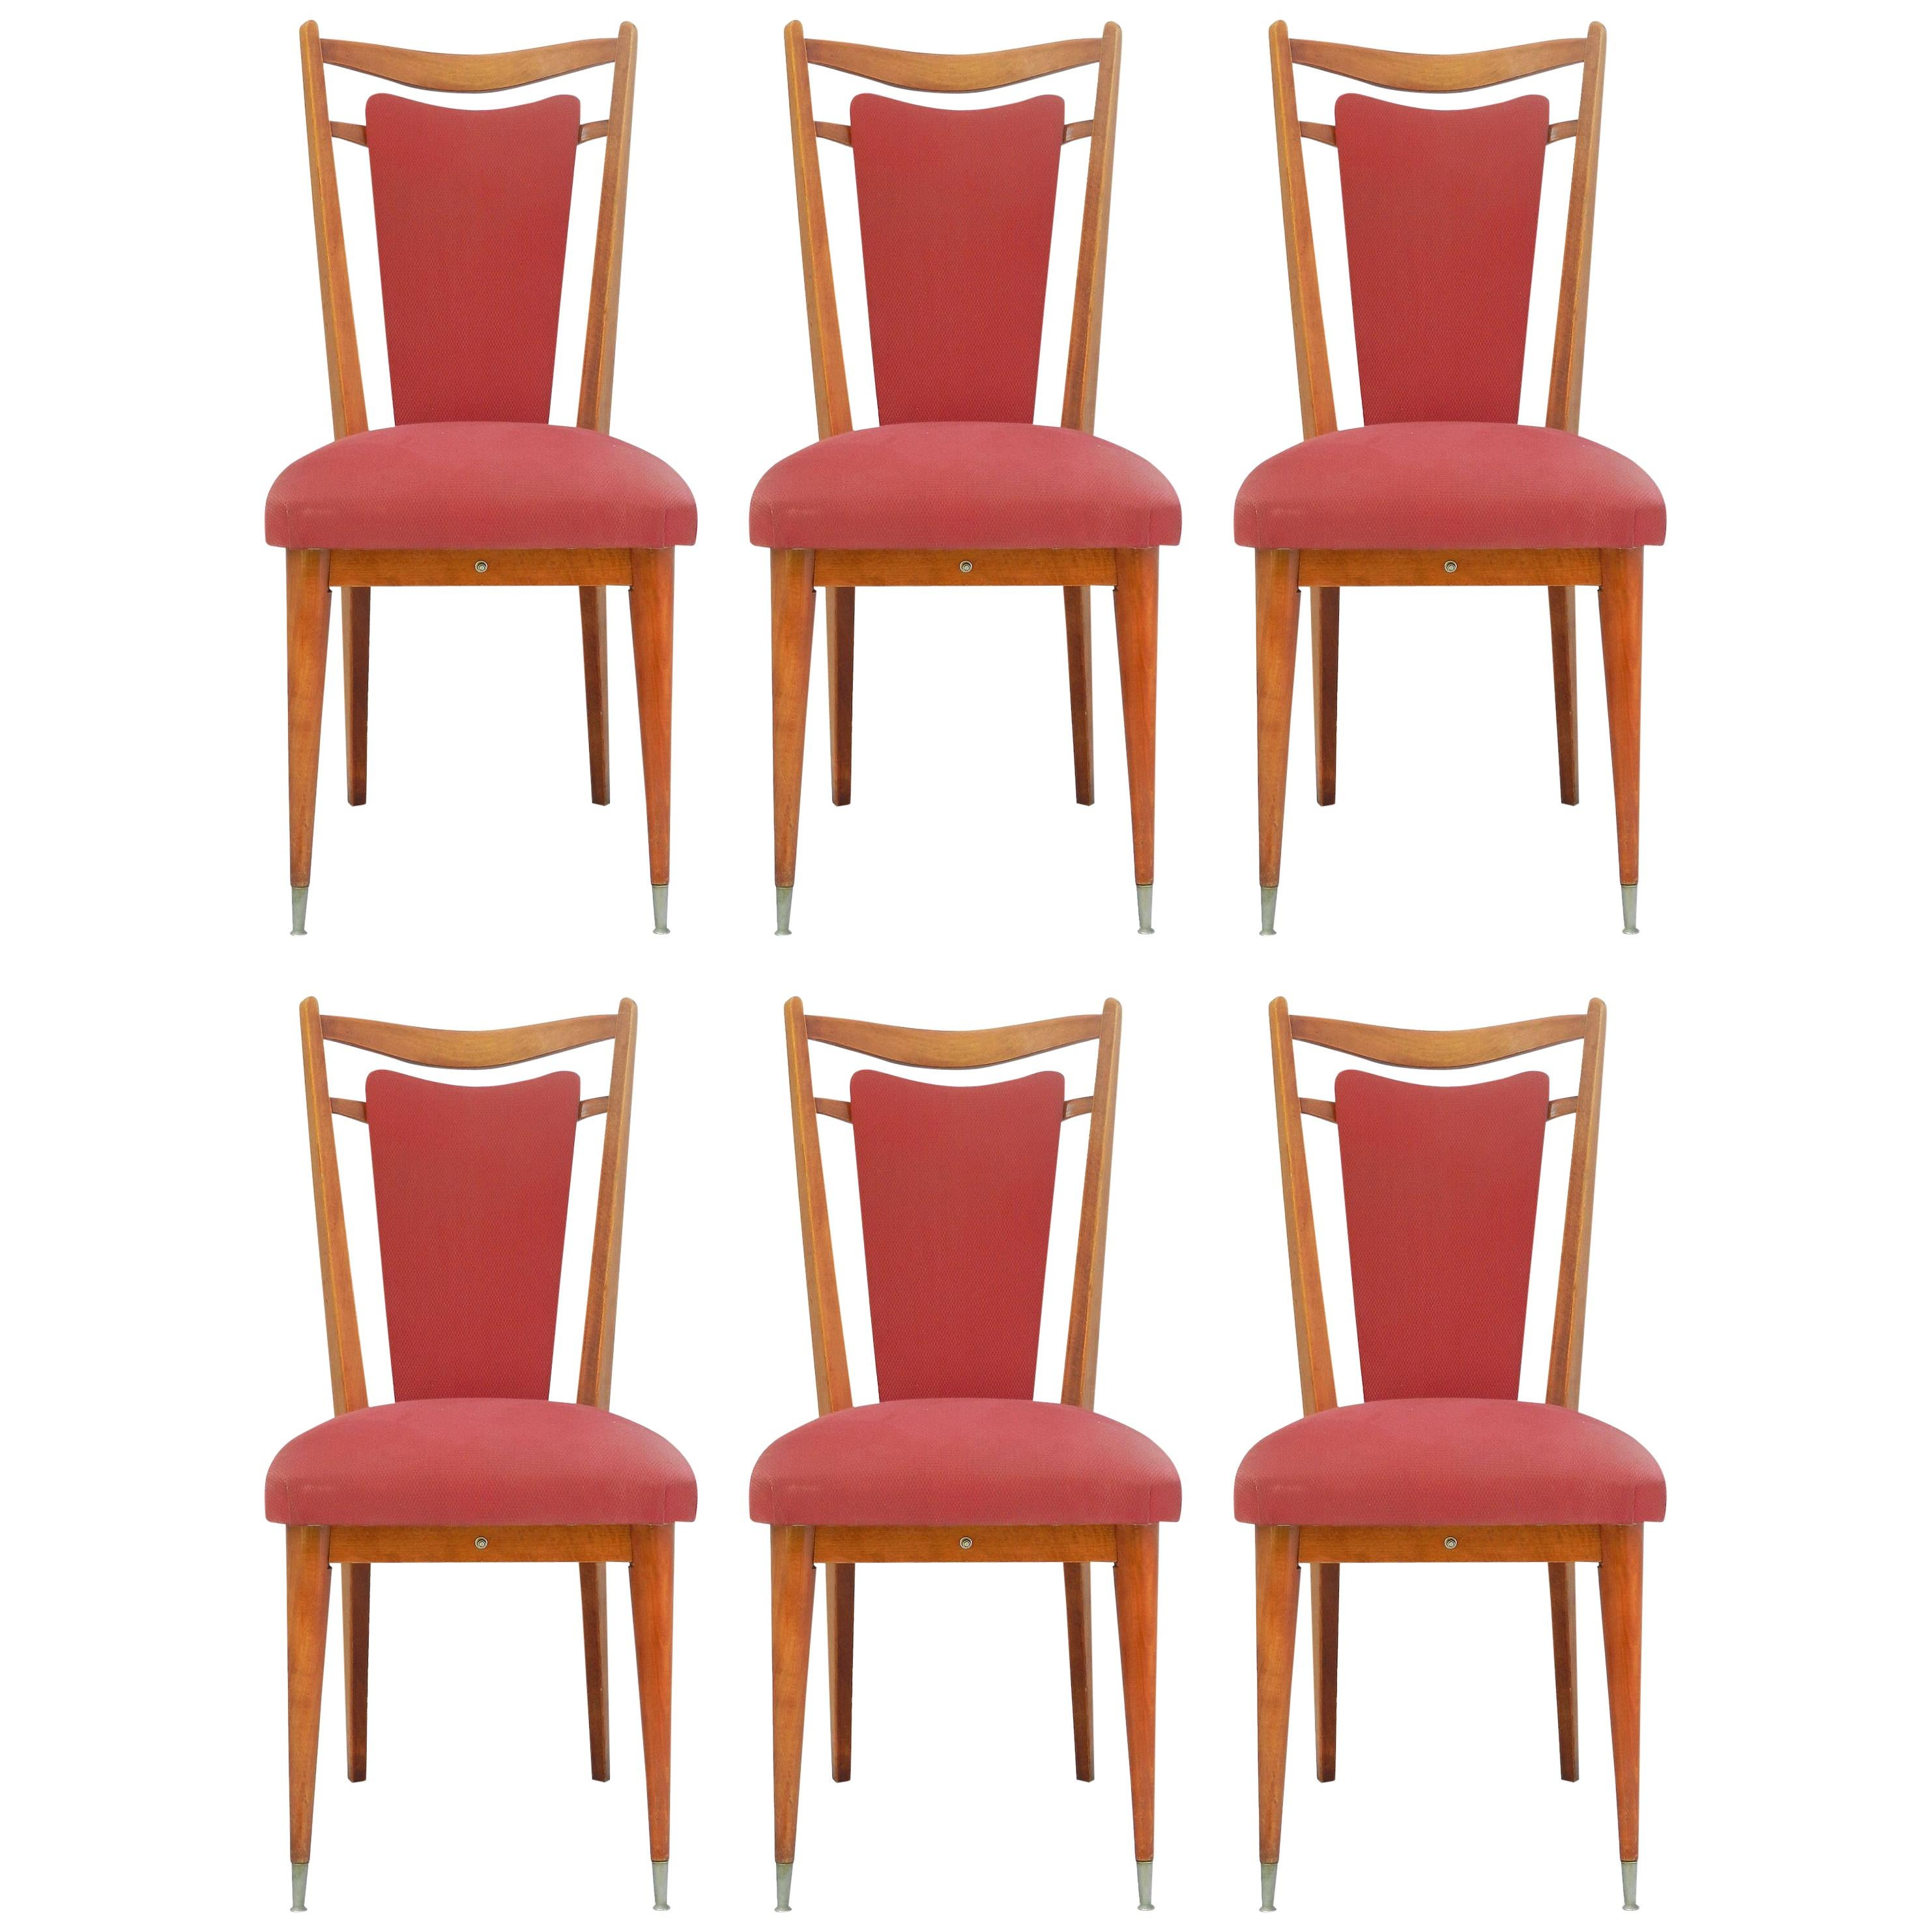 Six Midcentury Dining Chairs French Upholstered Easy to Recover